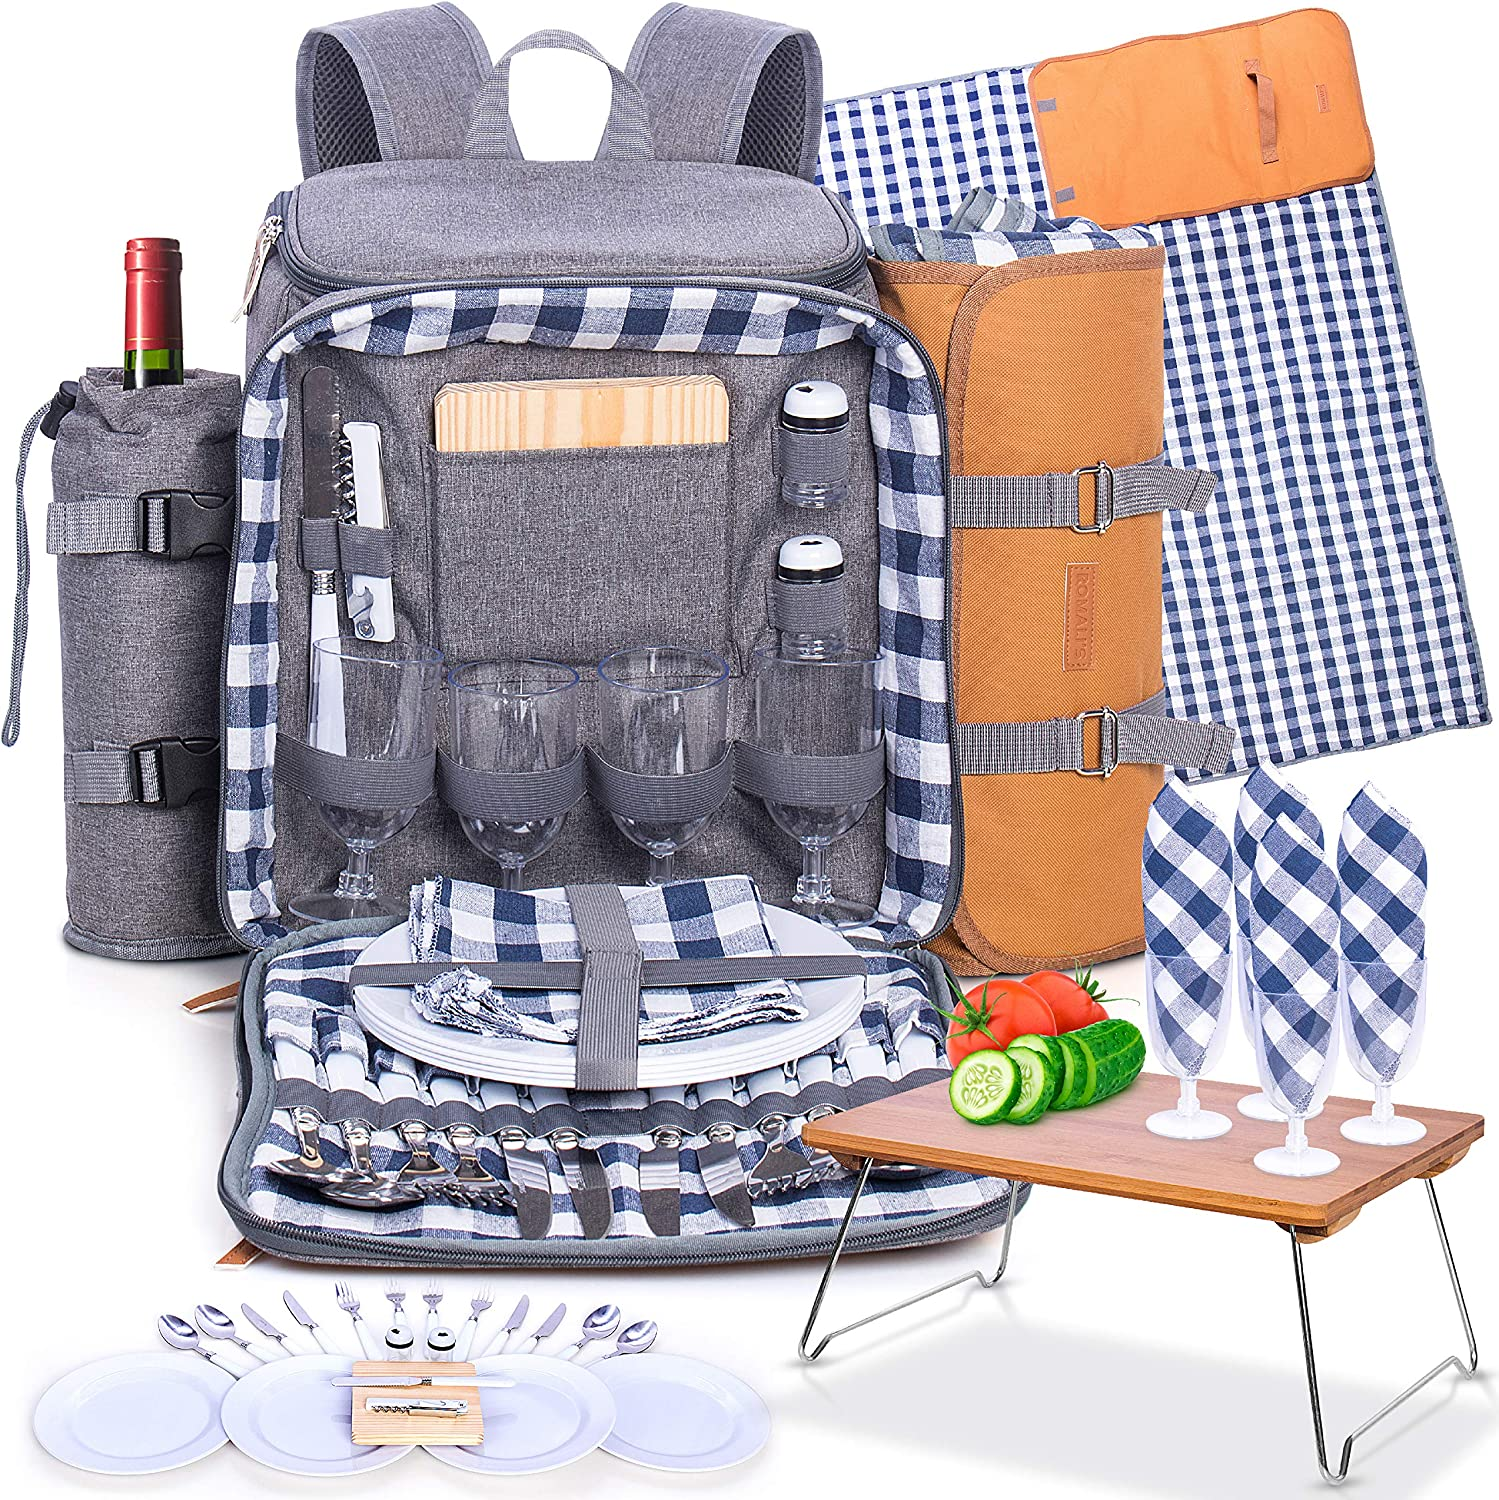 Family Picnic Backpack for 4 - Insulated - Gray - Fully Equipped with Ceramic Plates, Cutlery, Non-breakable Glasses, Chopping Board, Bottle Opener, Napkins, S/P Shakers Plus Waterproof Blanket: Kitchen & Dining